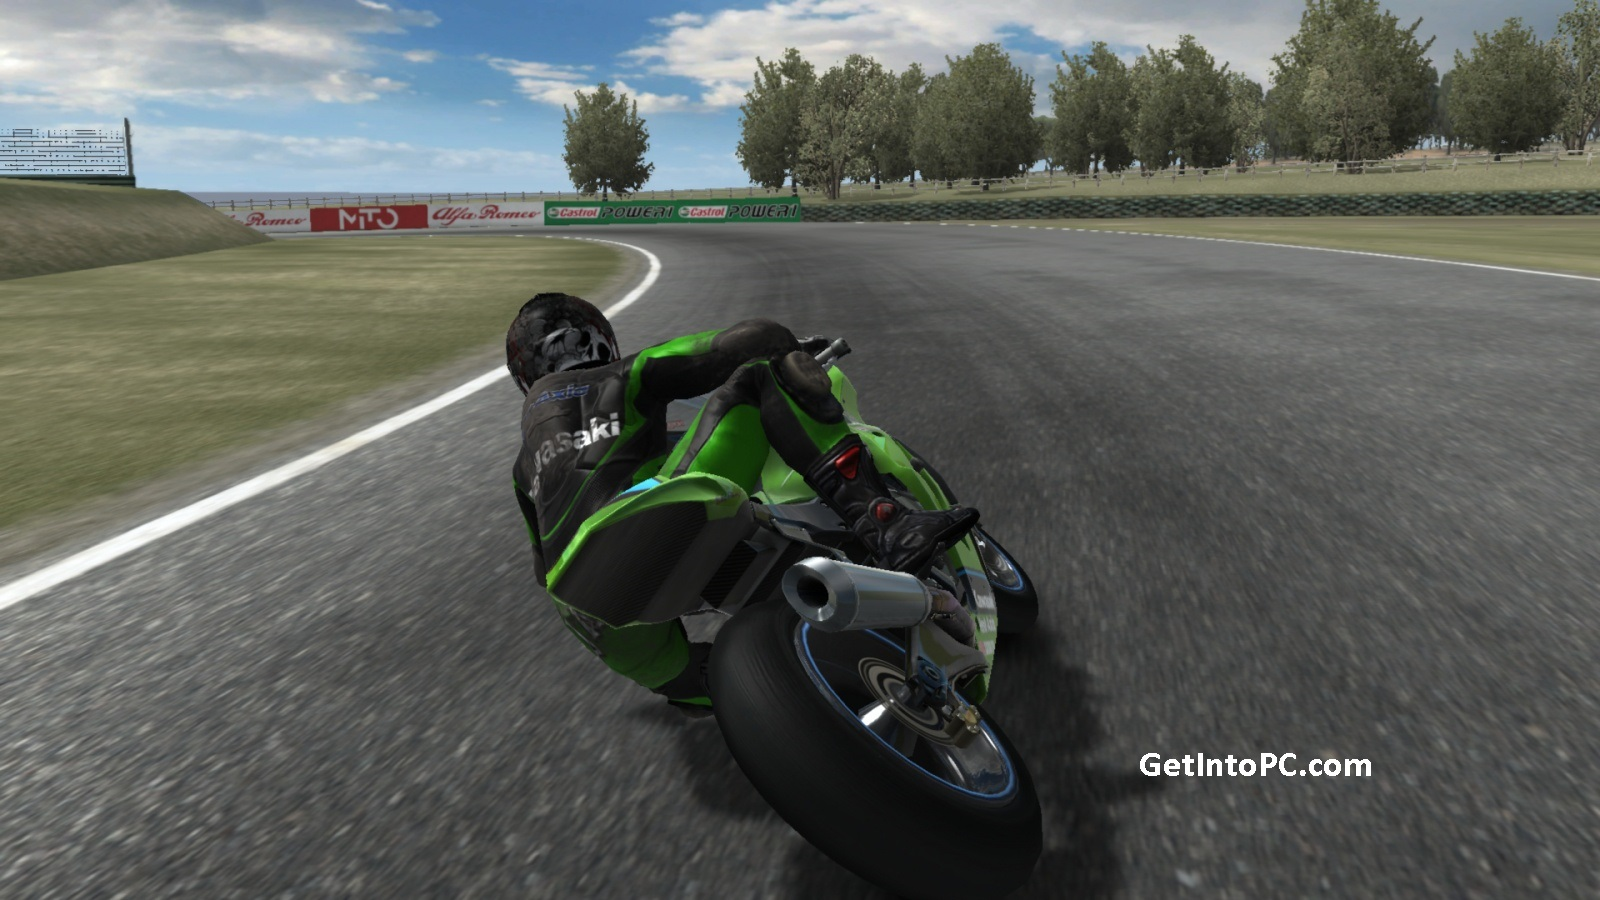 Bike Games Racing This Bike racing game has